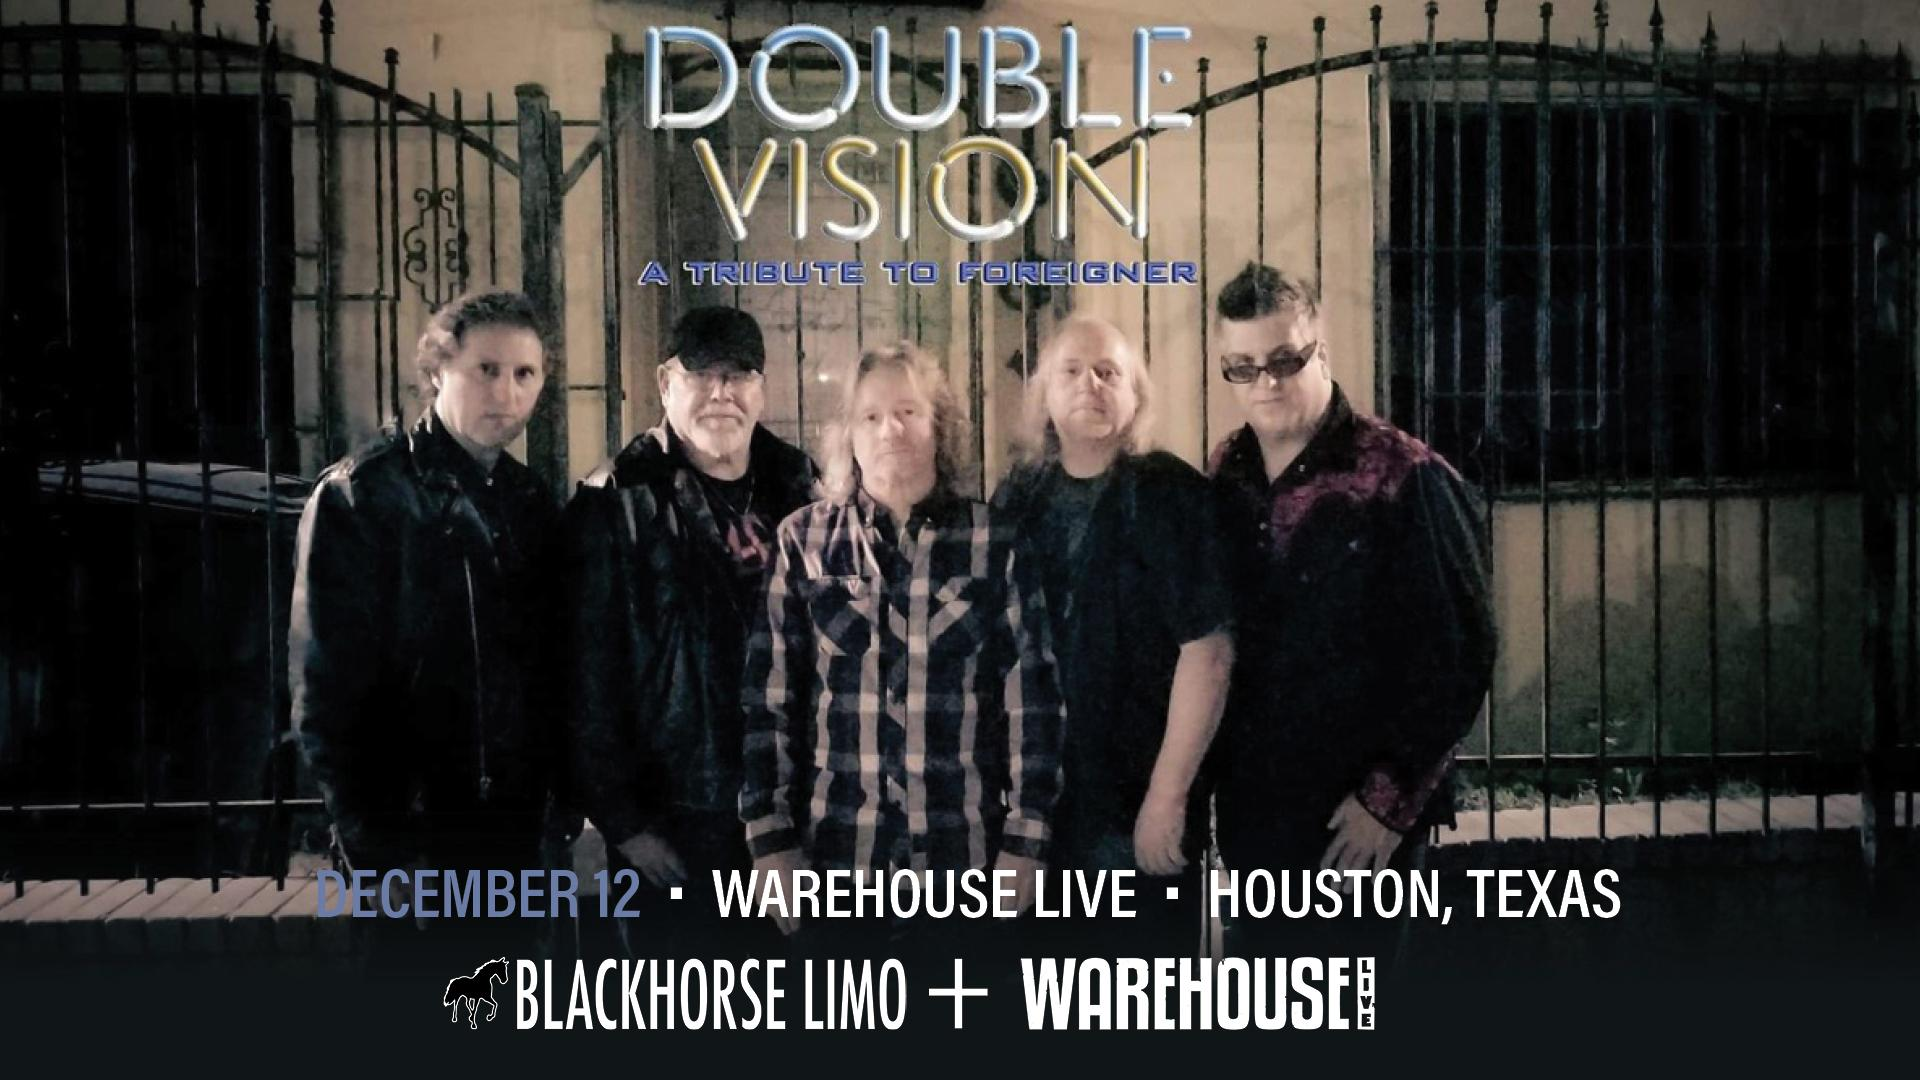 DOUBLE VISION (TRIBUTE TO FOREIGNER)